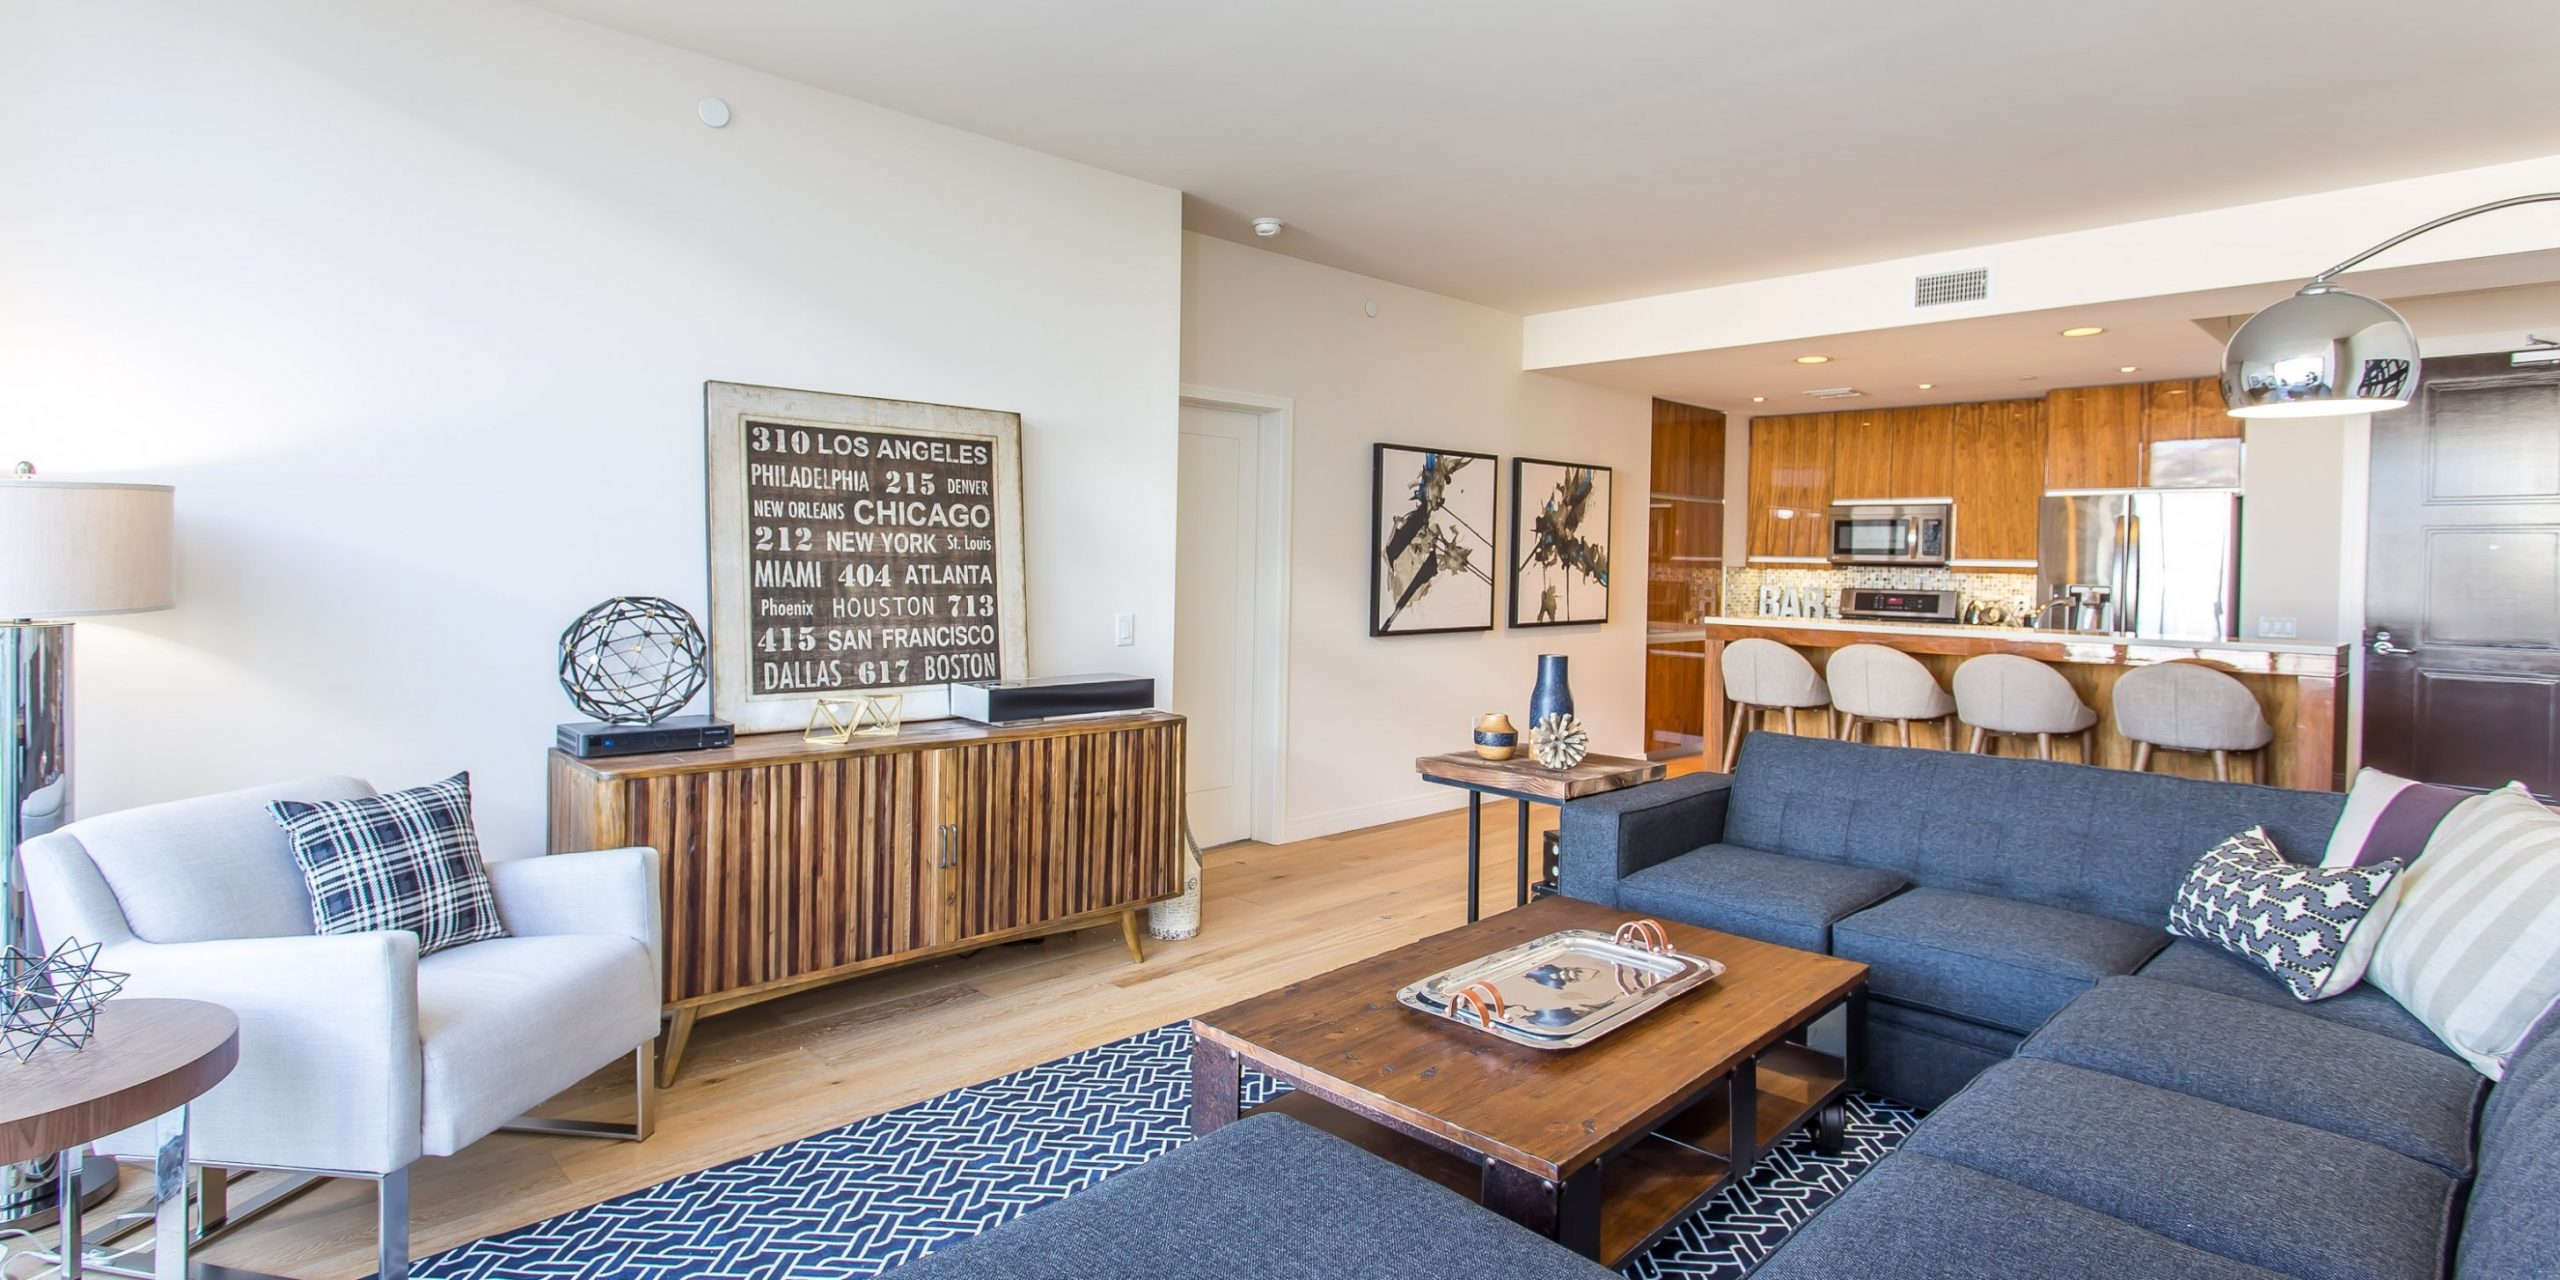 Apartment Decorating Ideas: 8 Ways to Transform Your Cookie-Cutter  - Rental Apartment Decor Ideas